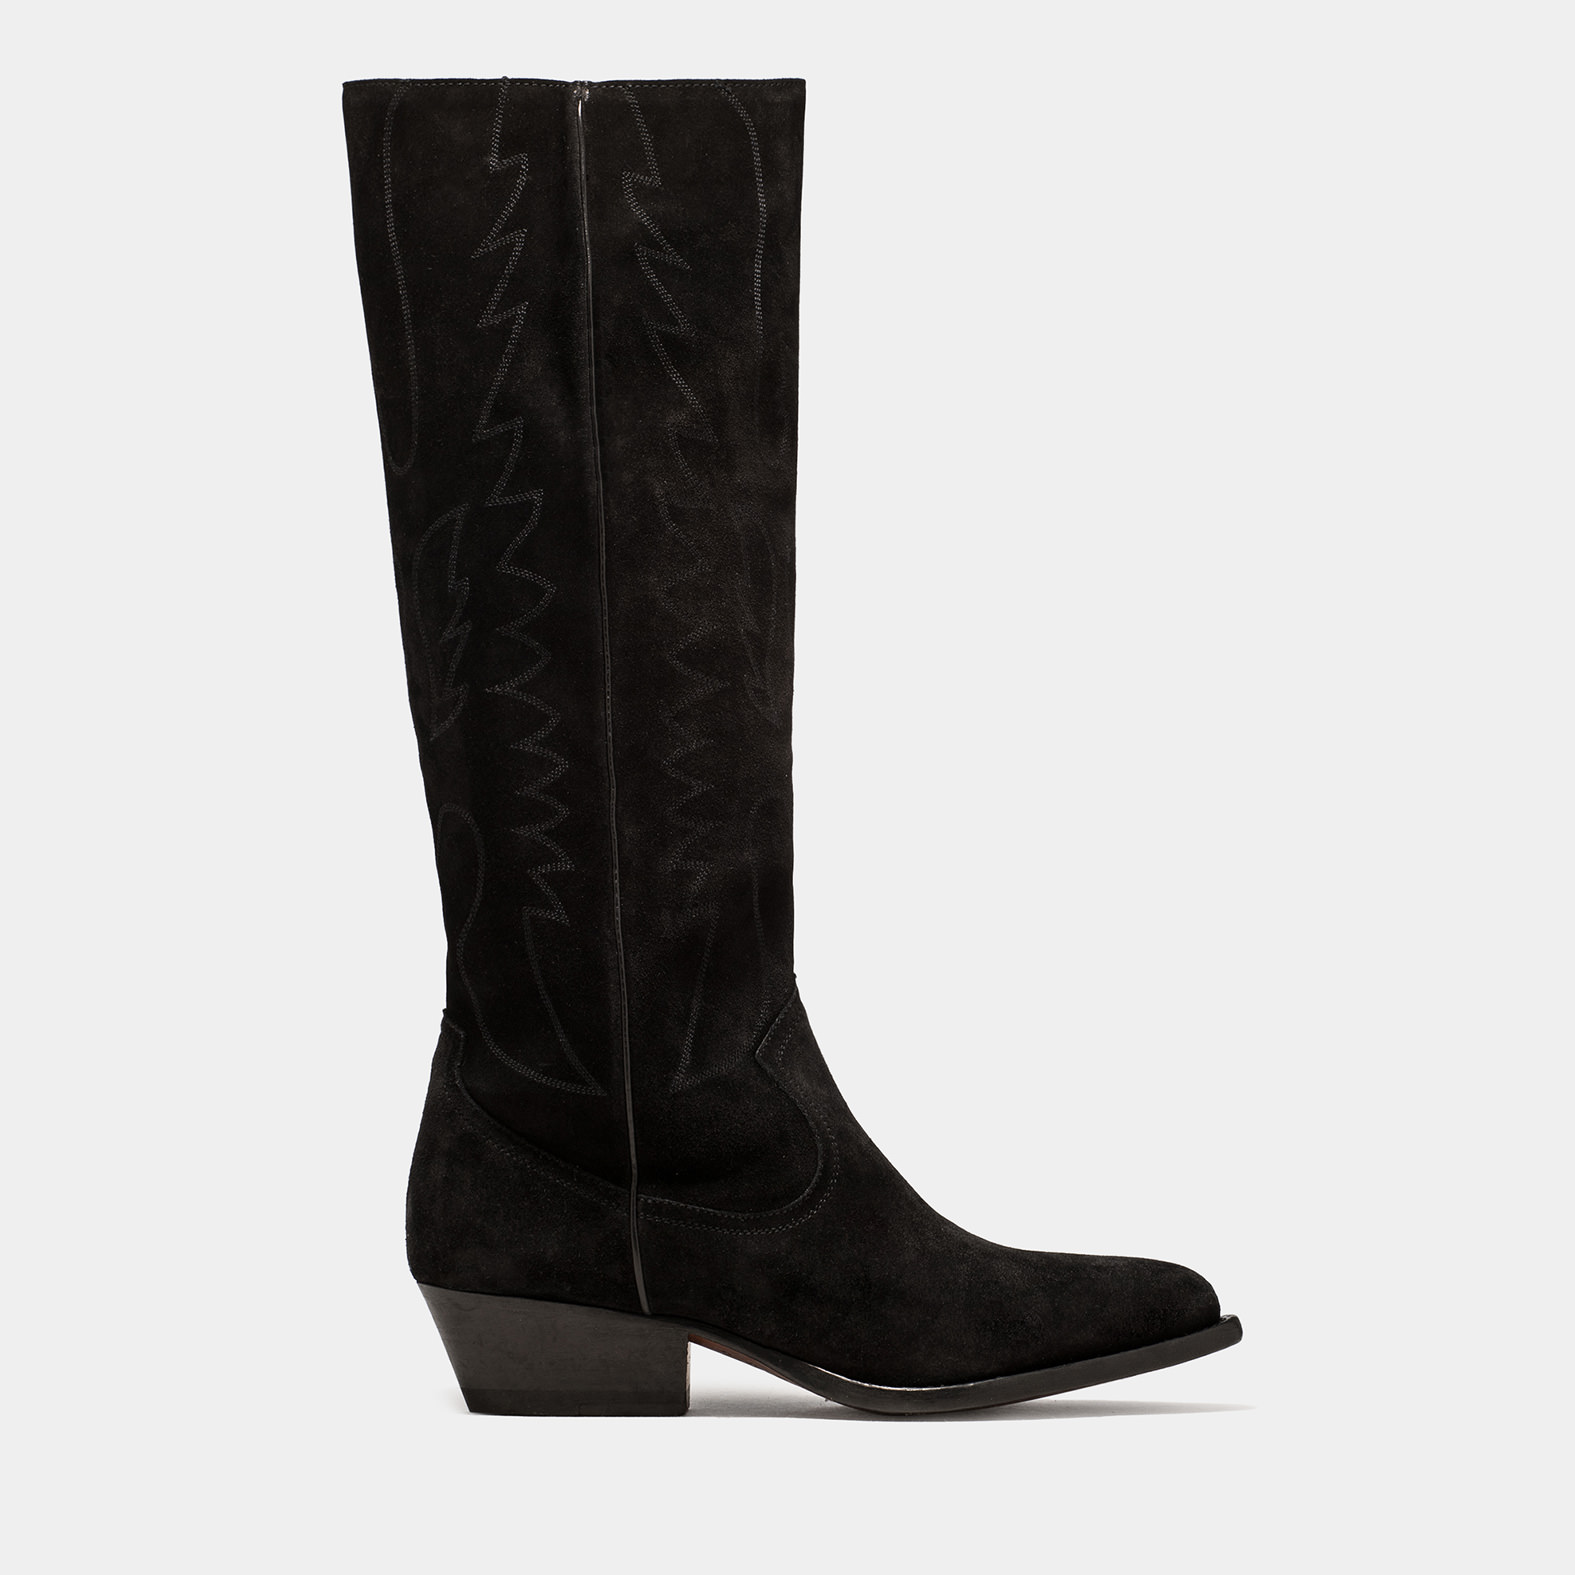 BUTTERO: TRES KNEE HIGH DURANGO BOOTS IN BLACK SUEDE